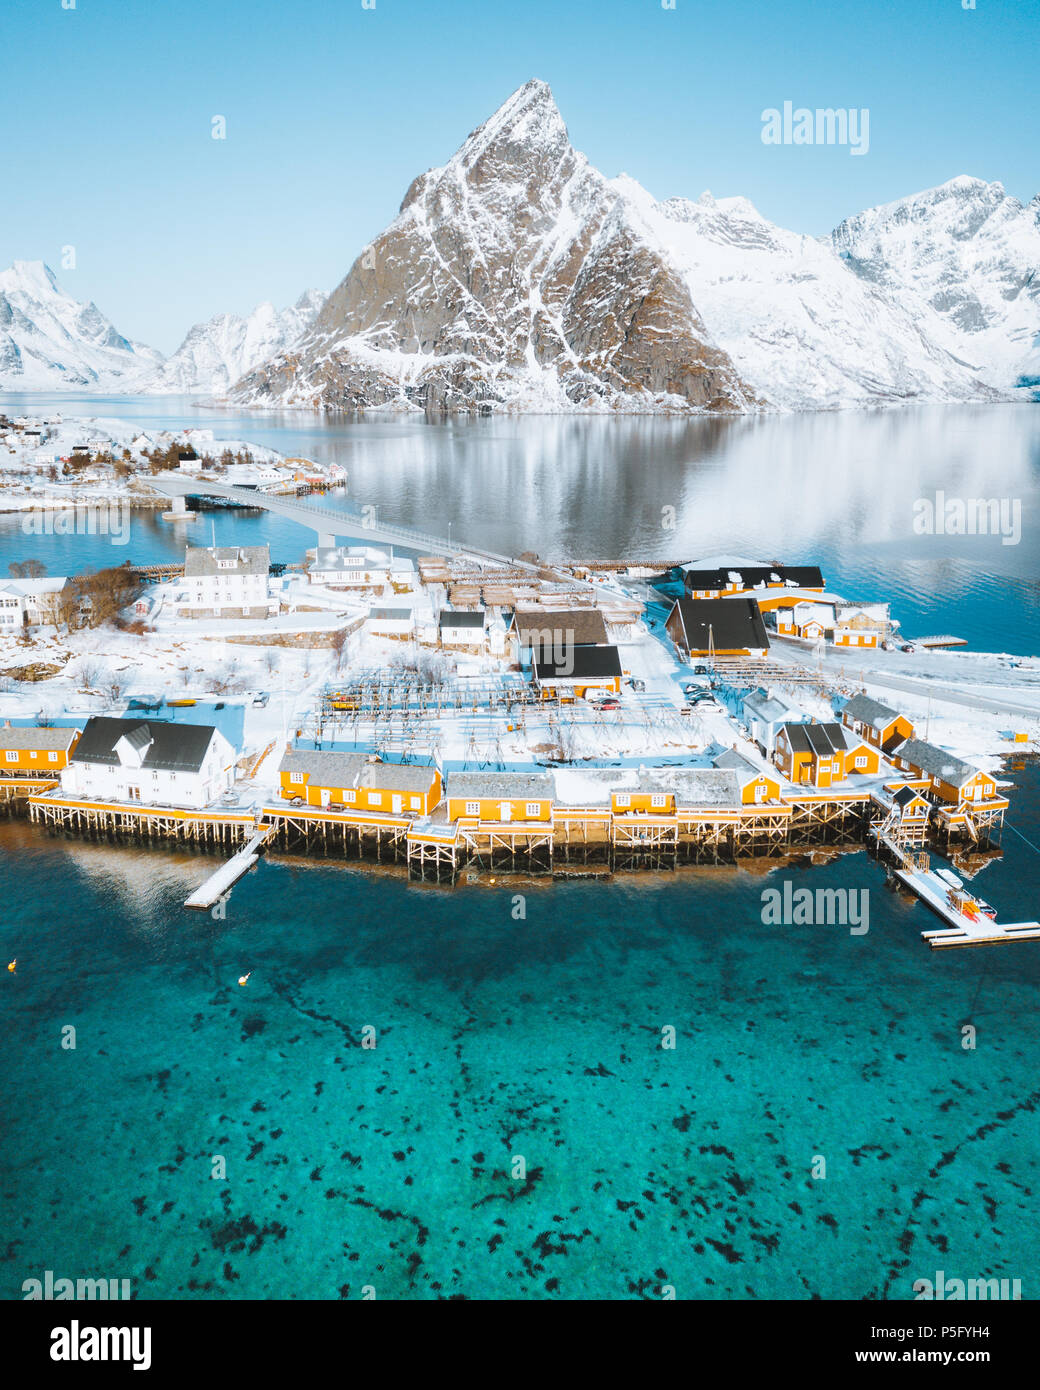 Aerial view of Lofoten winter scenery with traditional fisherman Rorbuer cabins and mountain peaks at sunrise, Sakrisoy, village of Reine, Norway - Stock Image